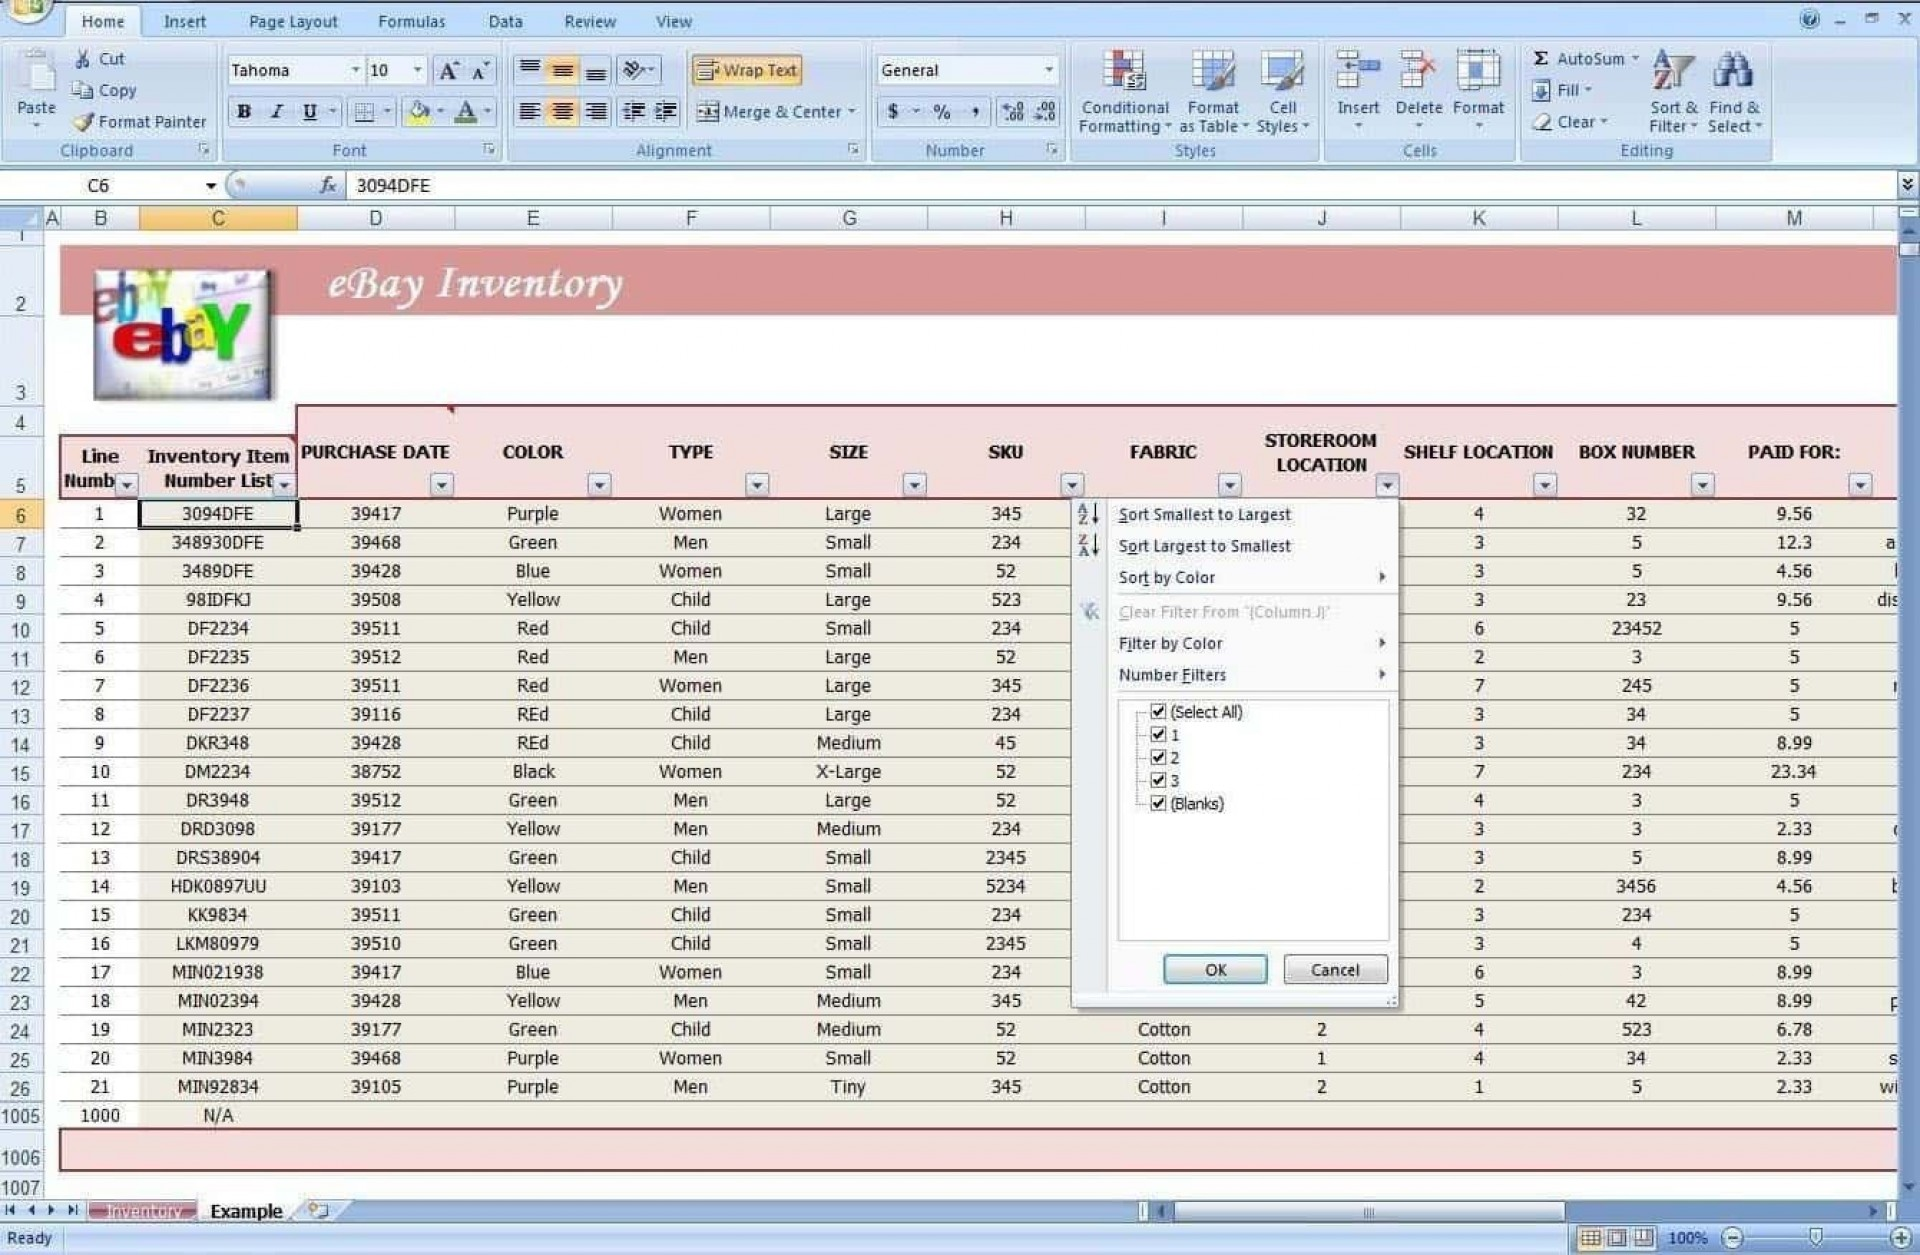 006 Stupendou Microsoft Excel Inventory Template Free Download Example 1920